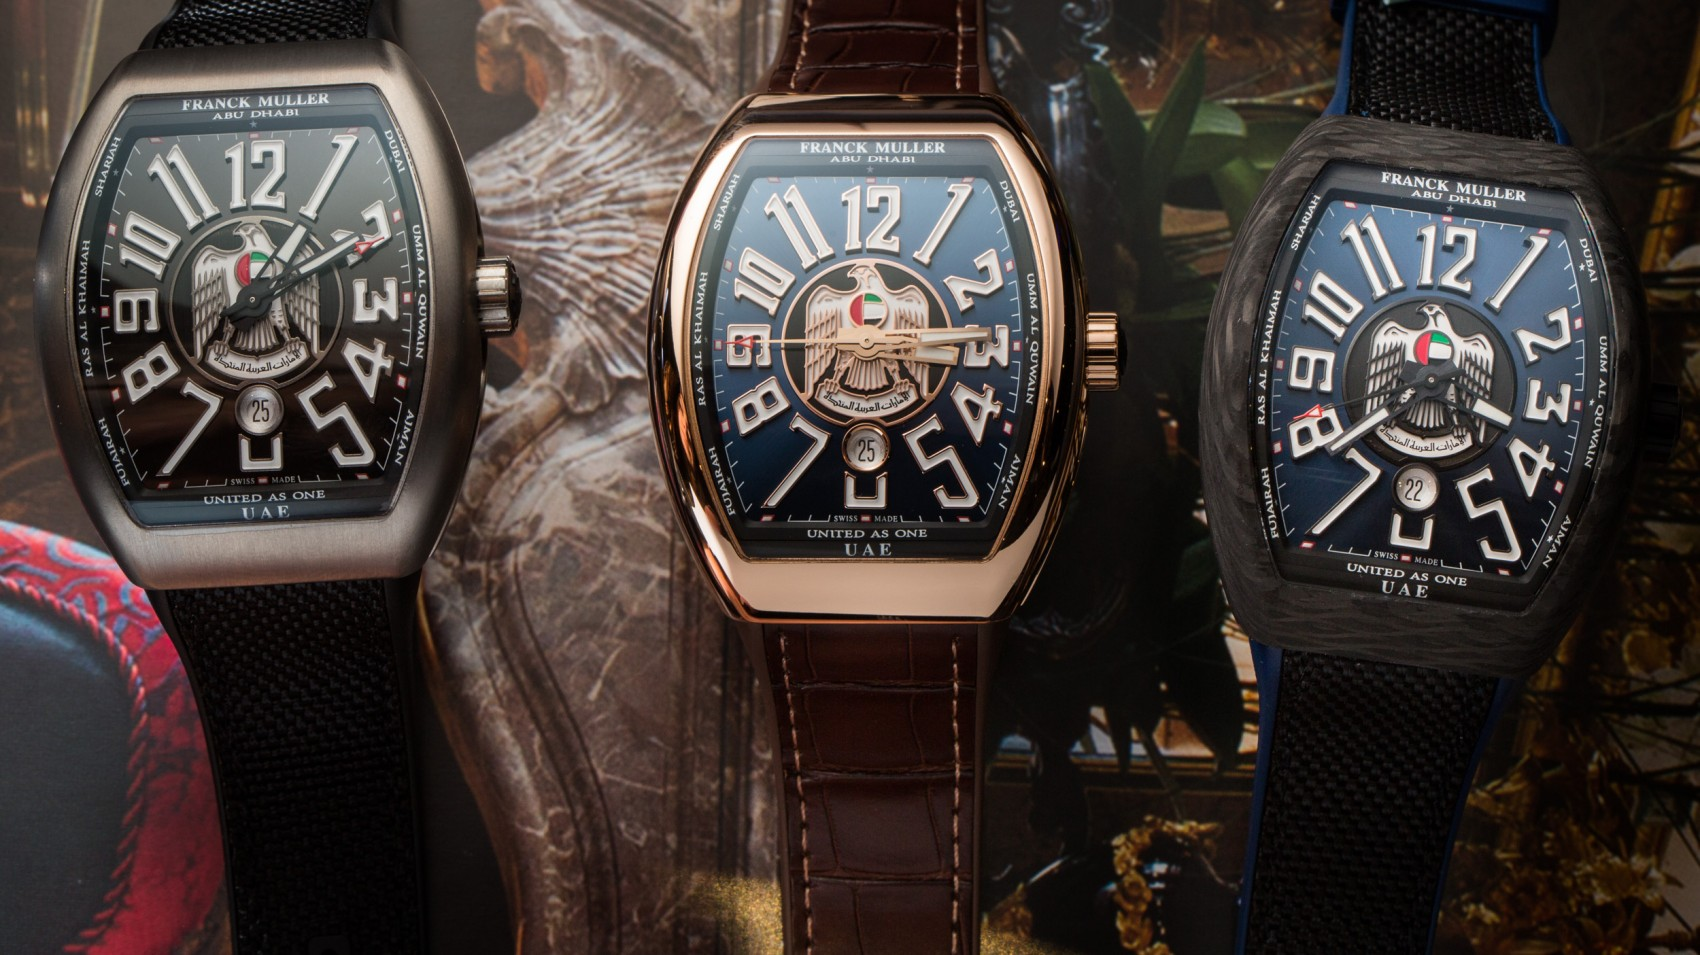 Swiss Franck Muller Watches